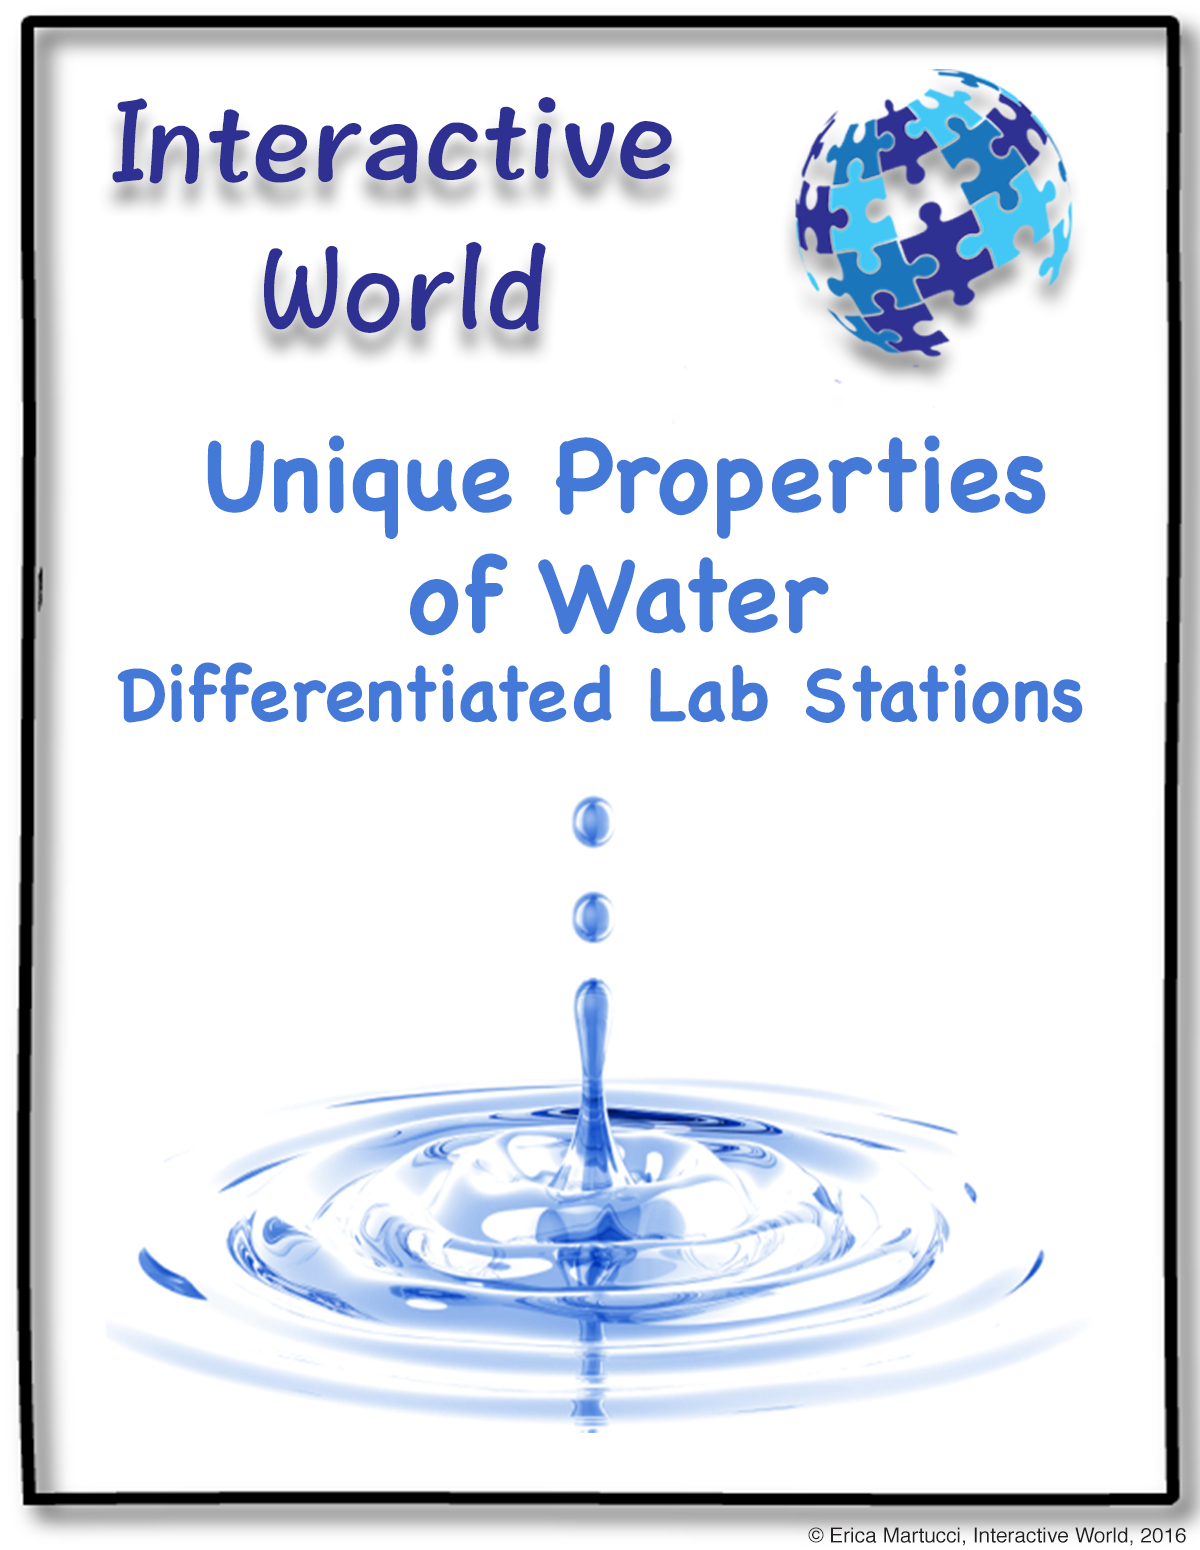 Unique Properties Of Water Differentiated Lab Stations